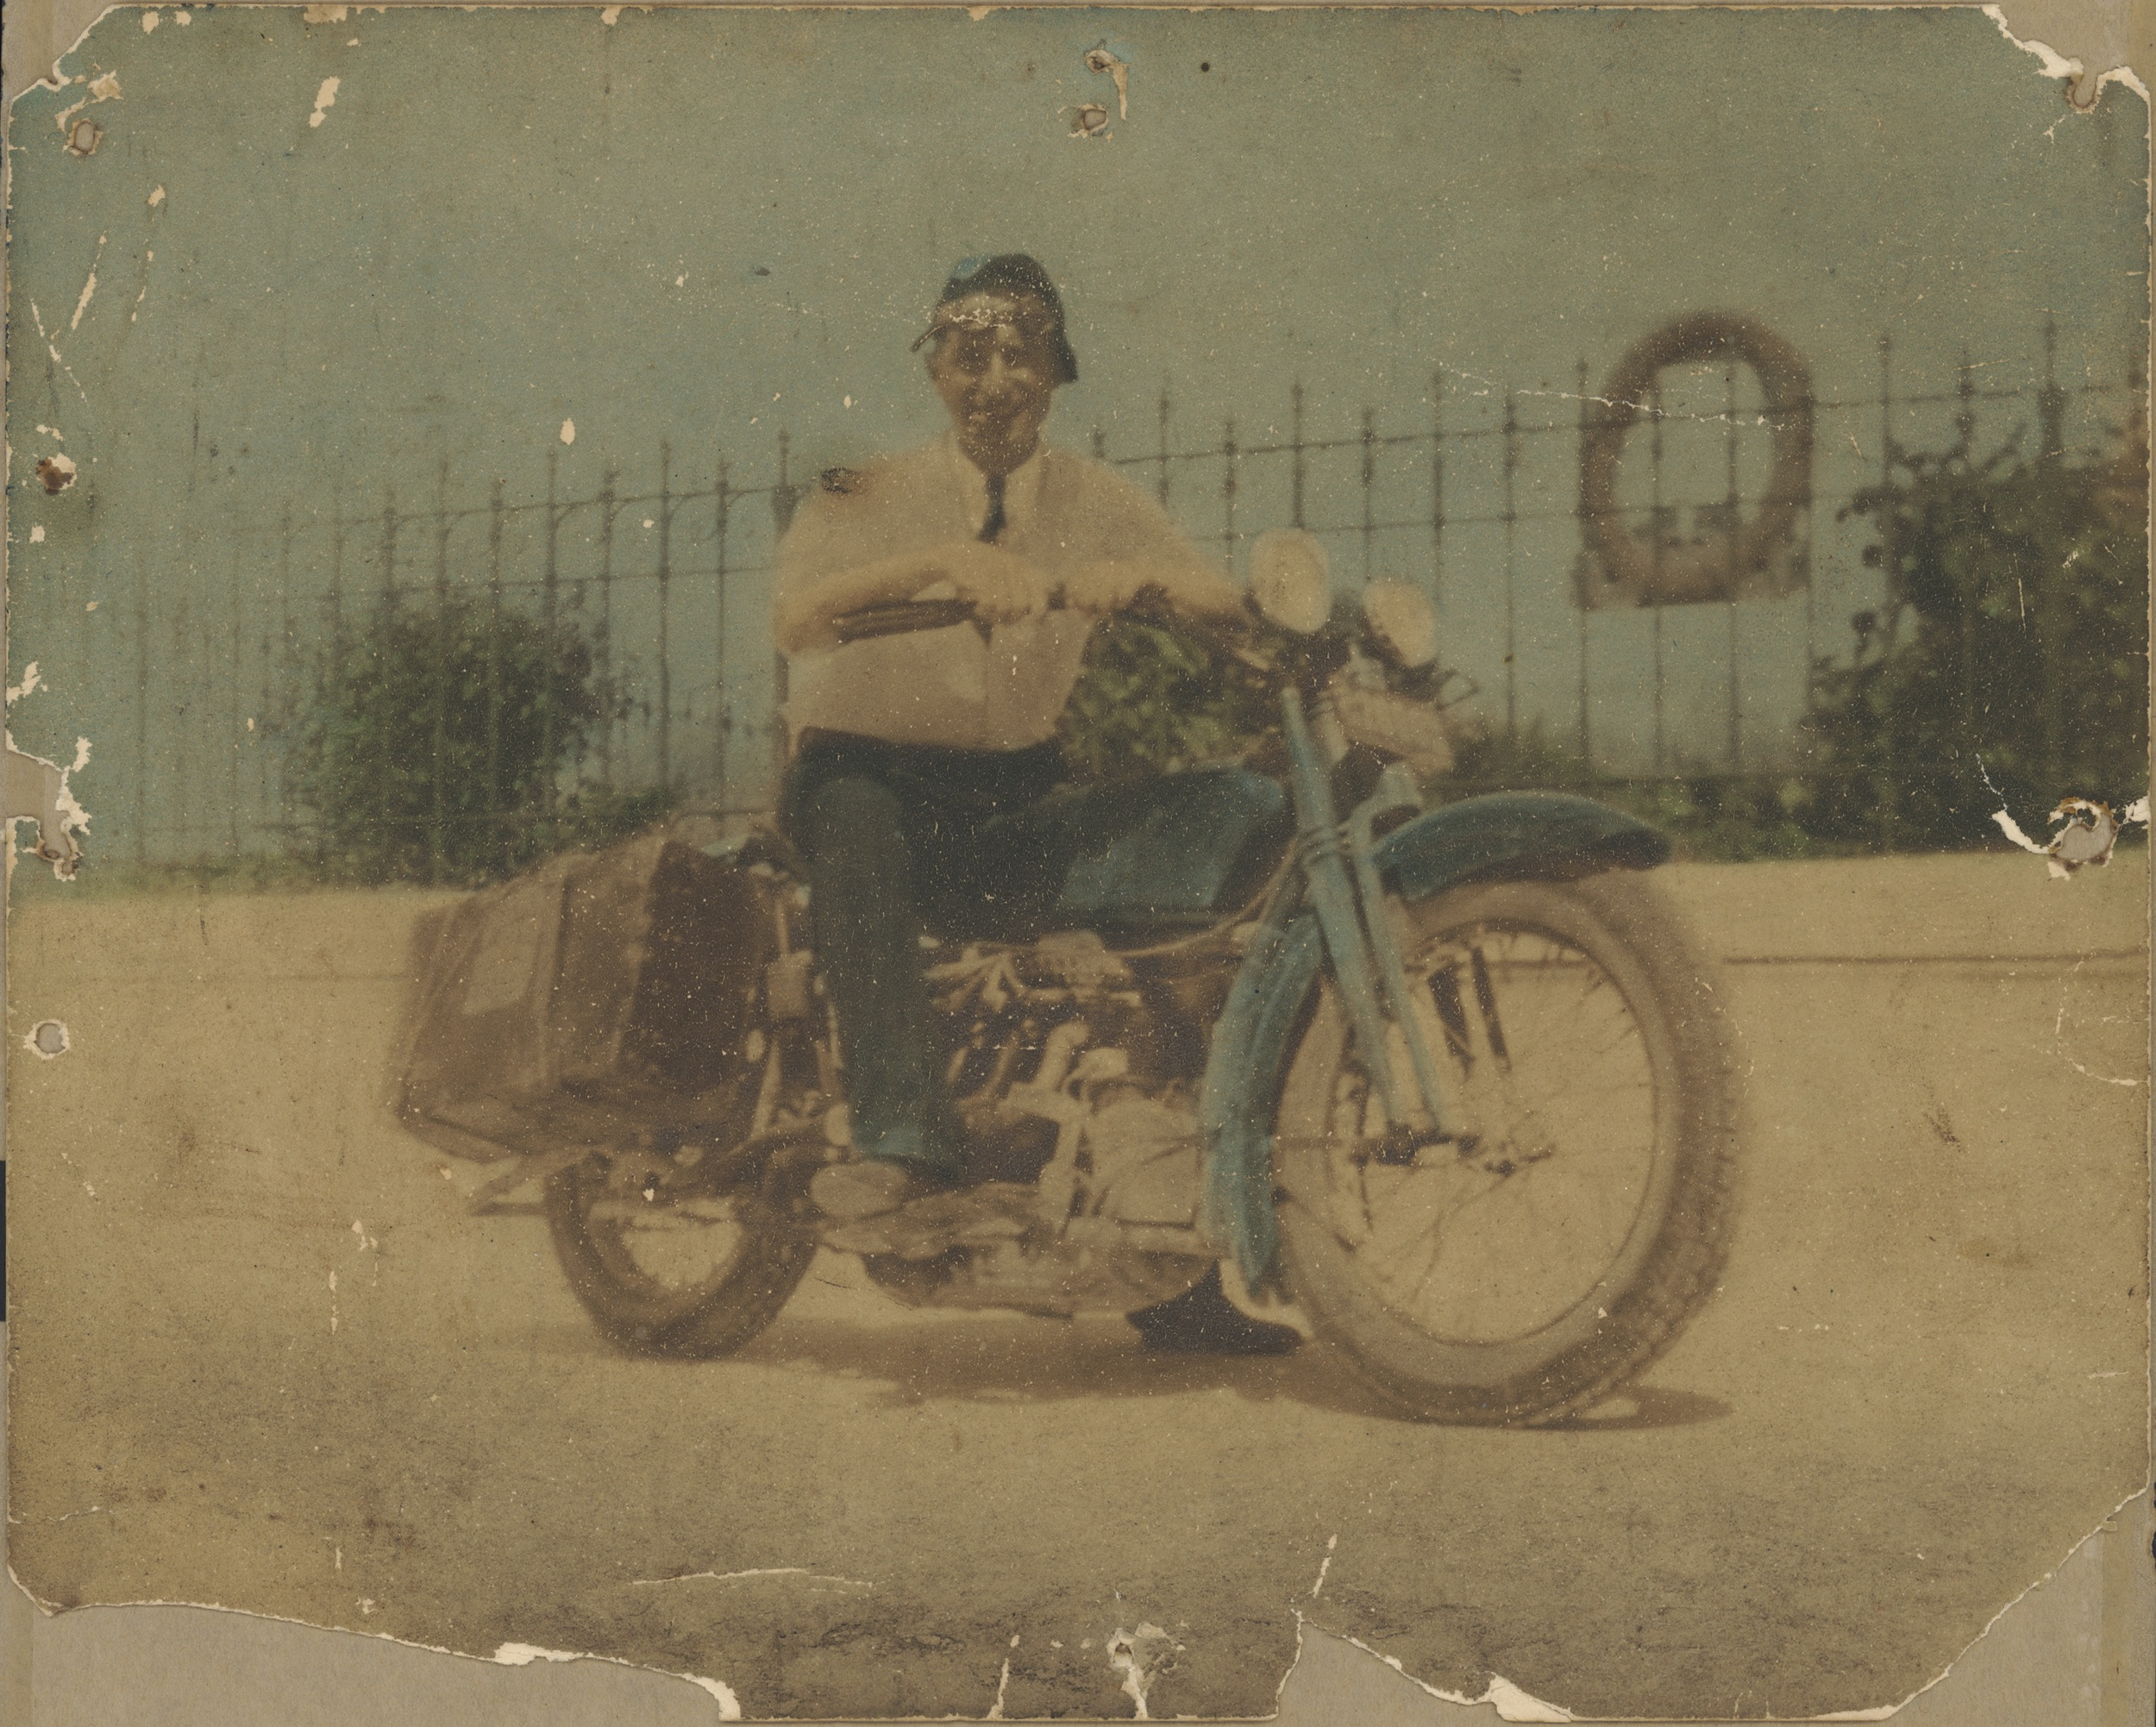 Date unknown.  Joseph Acquiste, on motorcycle he built and toured Italy on.